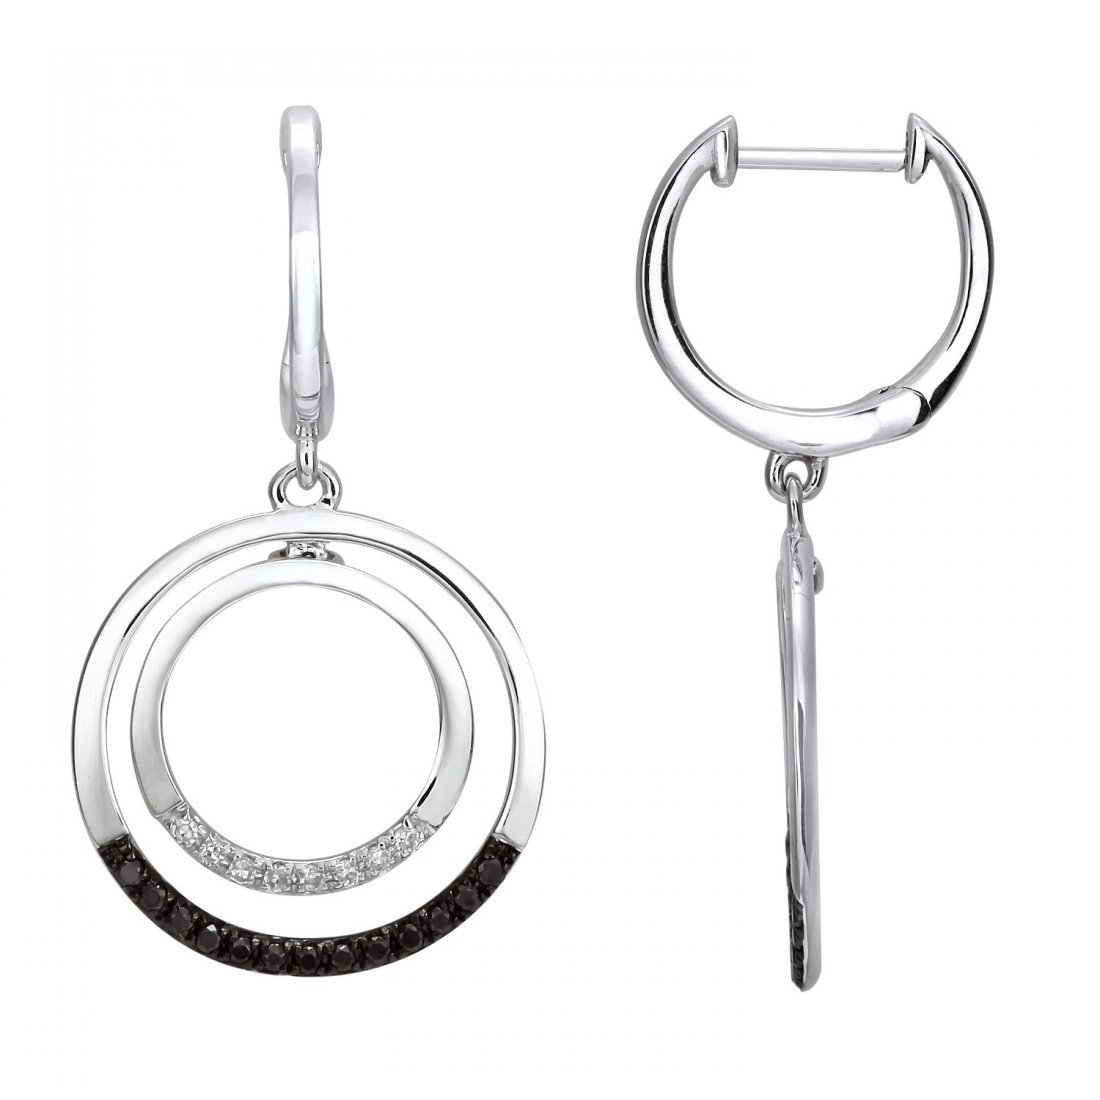 These brightly polished 14KT white gold earring